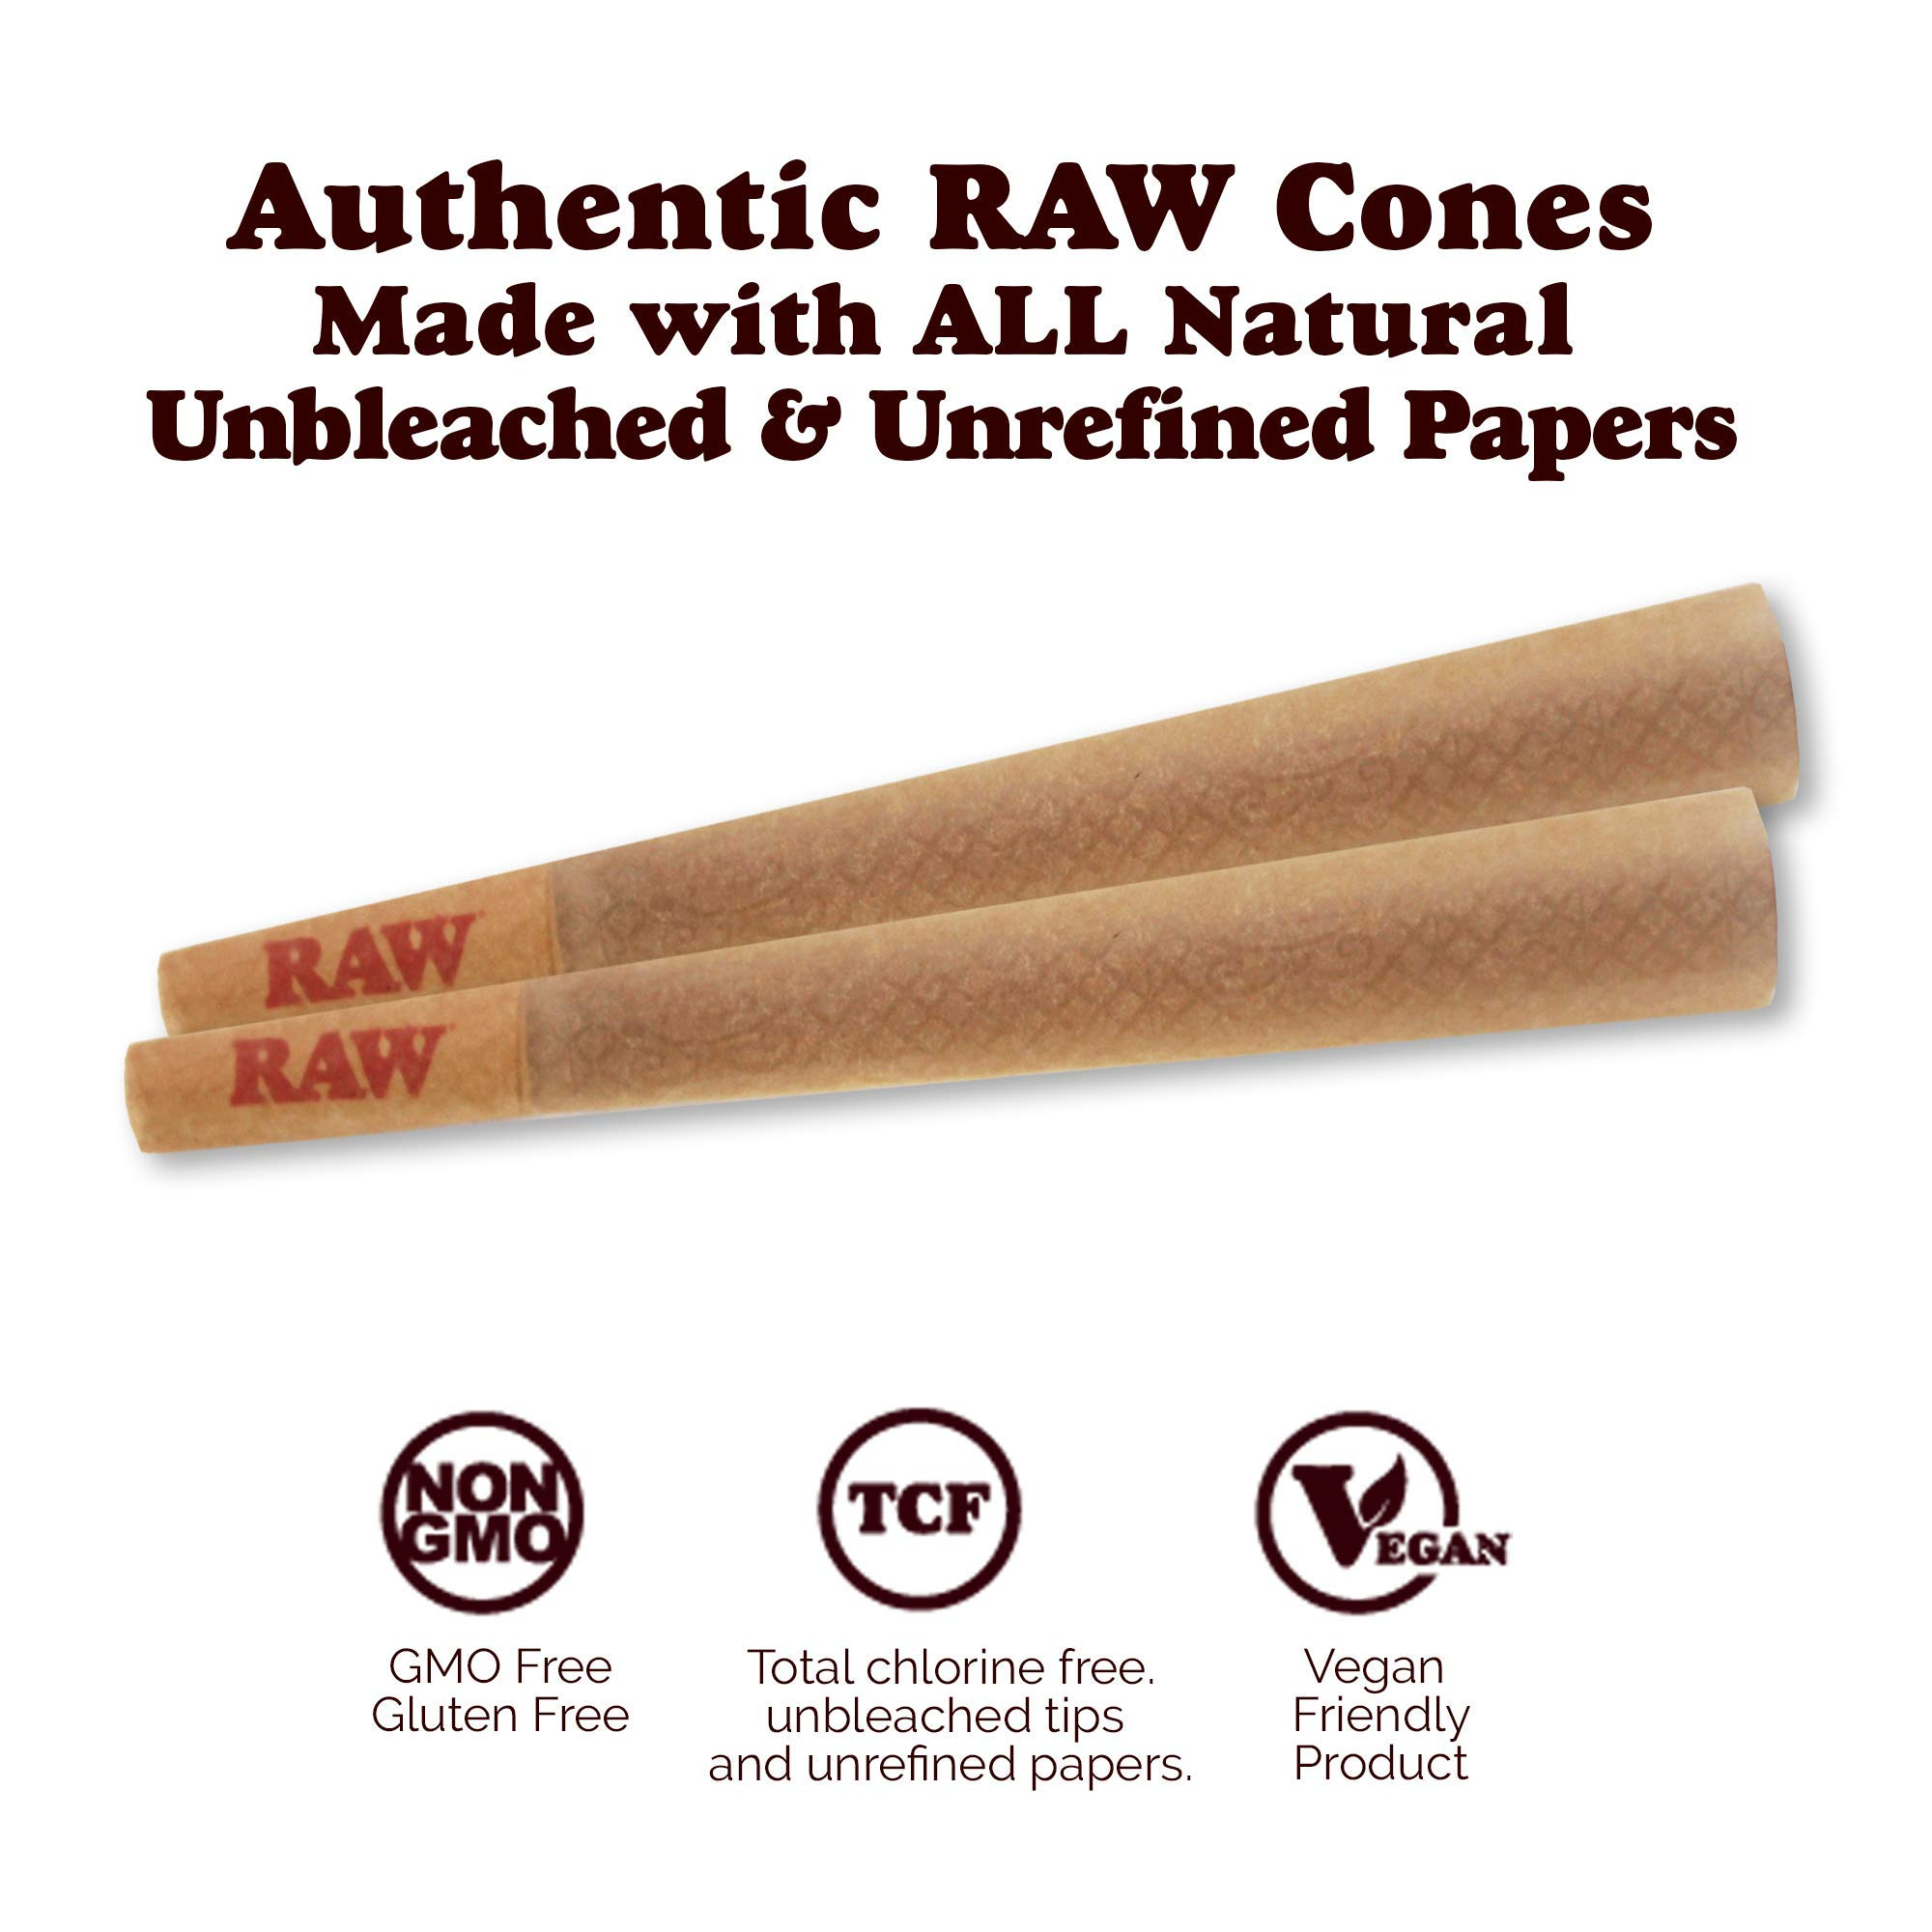 RAW 1400 Pack Classic King Size Pre Rolled Cones with Tips Plus 350 Bonus Mylar Foil Bags | Rolling Papers Made with All Natural Fibers by Raw, W Gallery (Image #2)